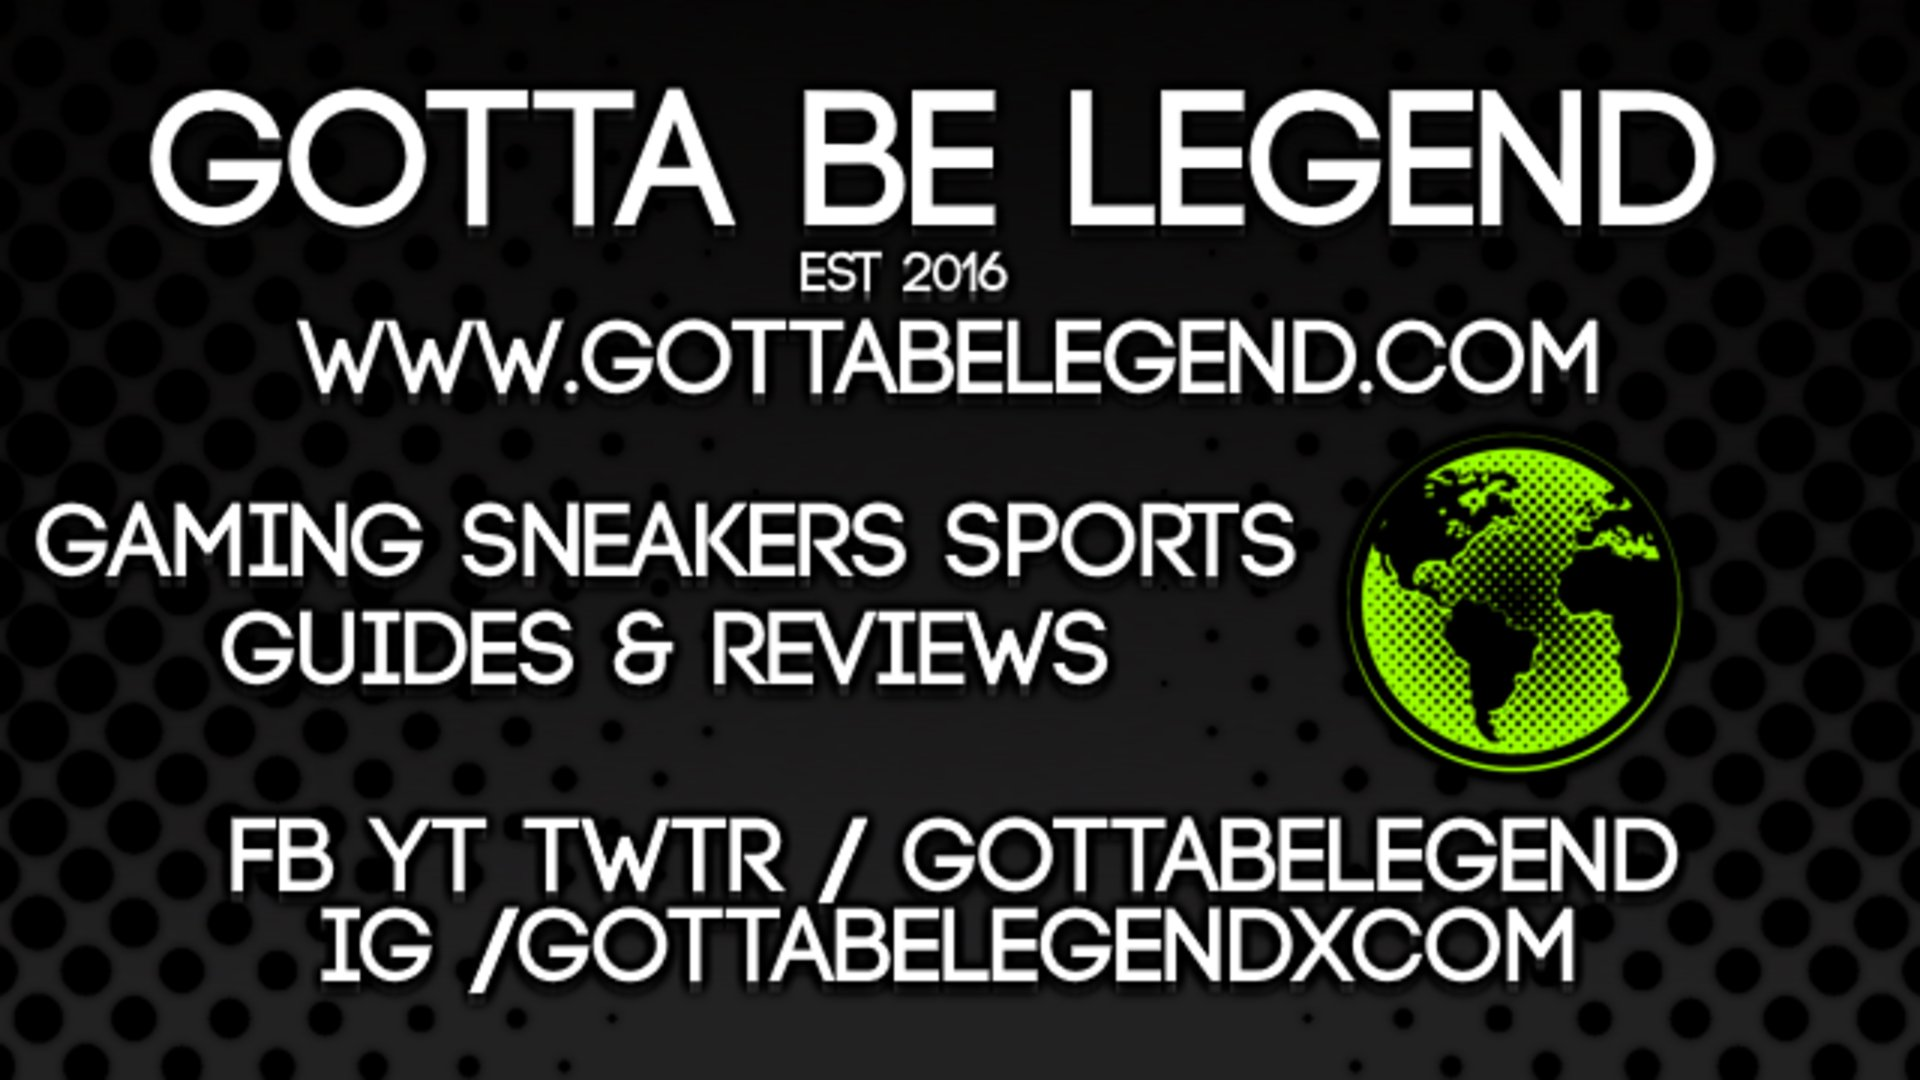 Twitch stream of gottabelegend